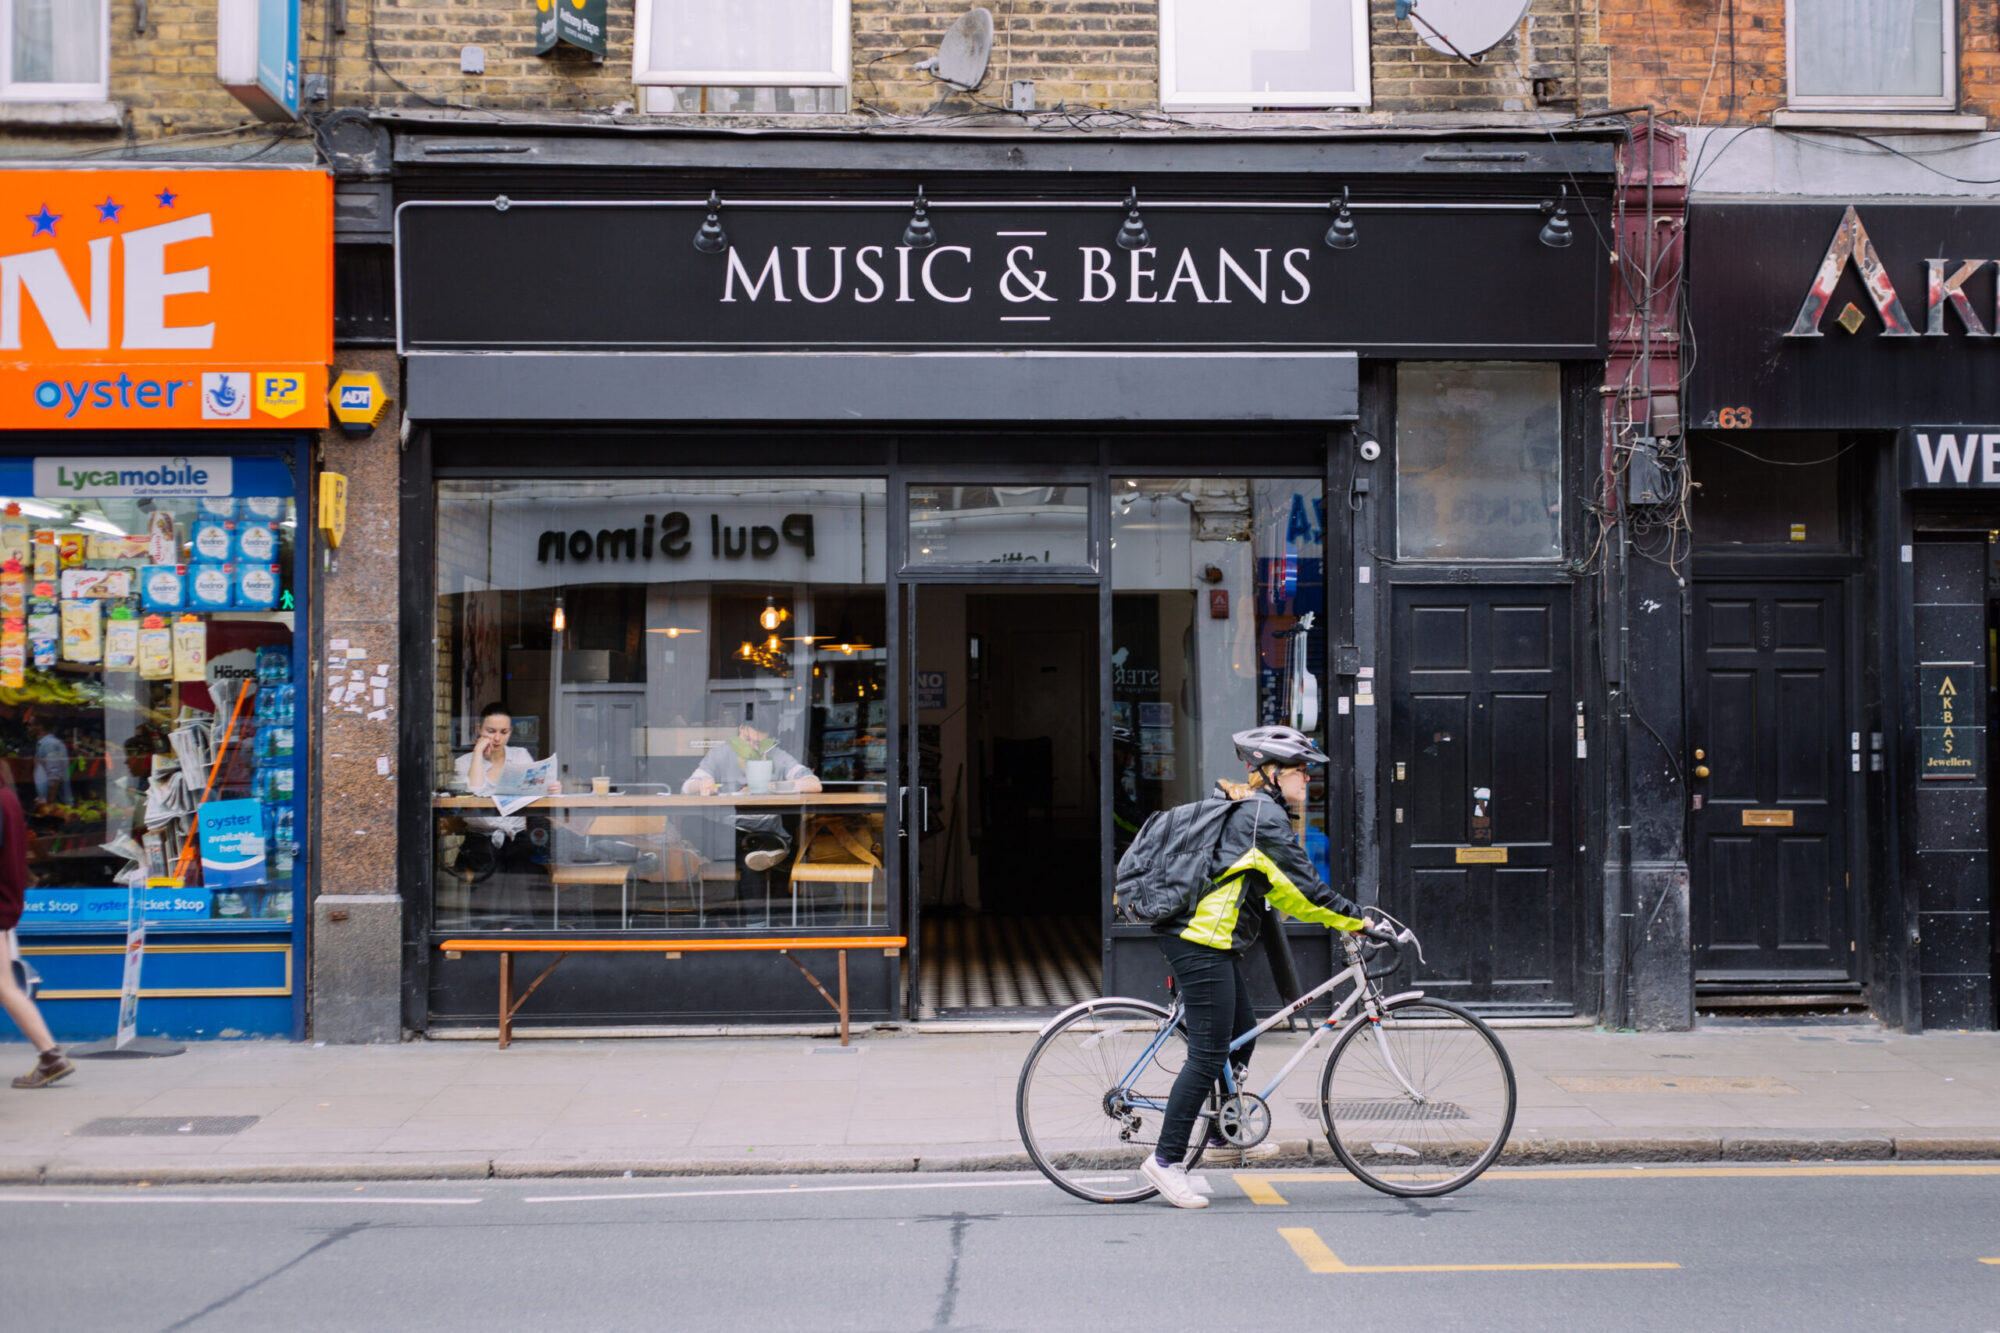 The exterior of Music & Beans.